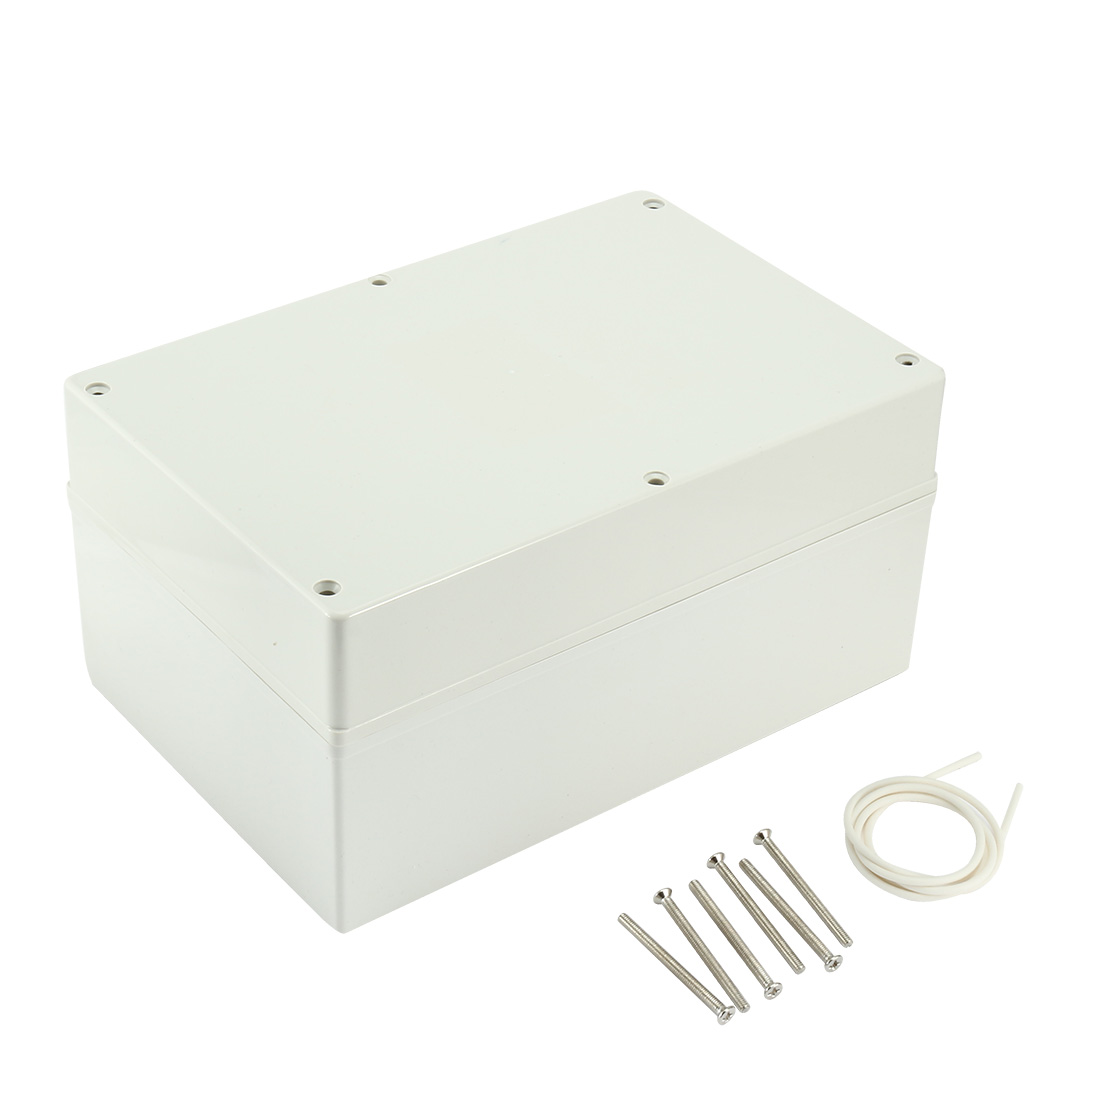 "9.5""x6.3""x4.7""(240mmx160mmx120mm) ABS Junction Box Universal Electric Project Enclosure"